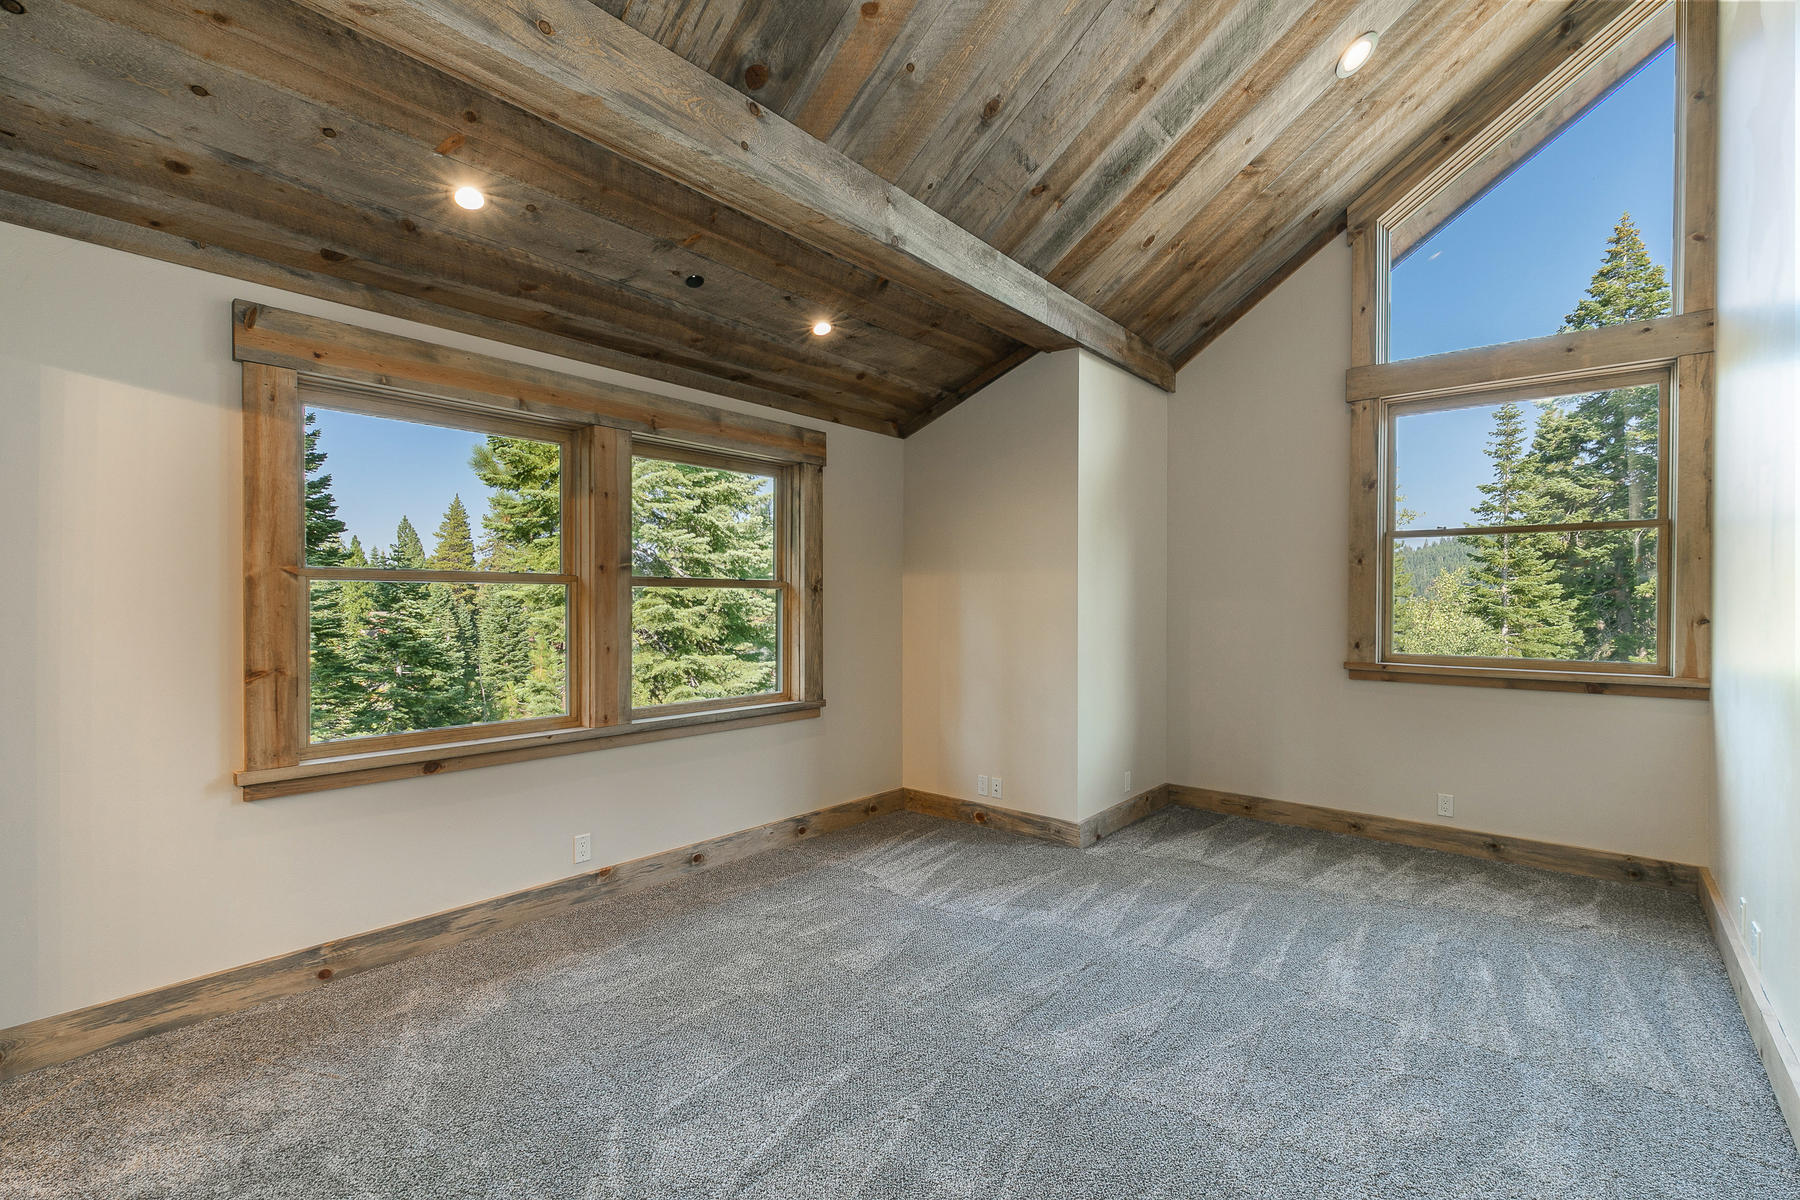 Additional photo for property listing at 2110 Eagle Feather Court , Truckee, CA 2110 Eagle Feather Truckee, California 96161 United States